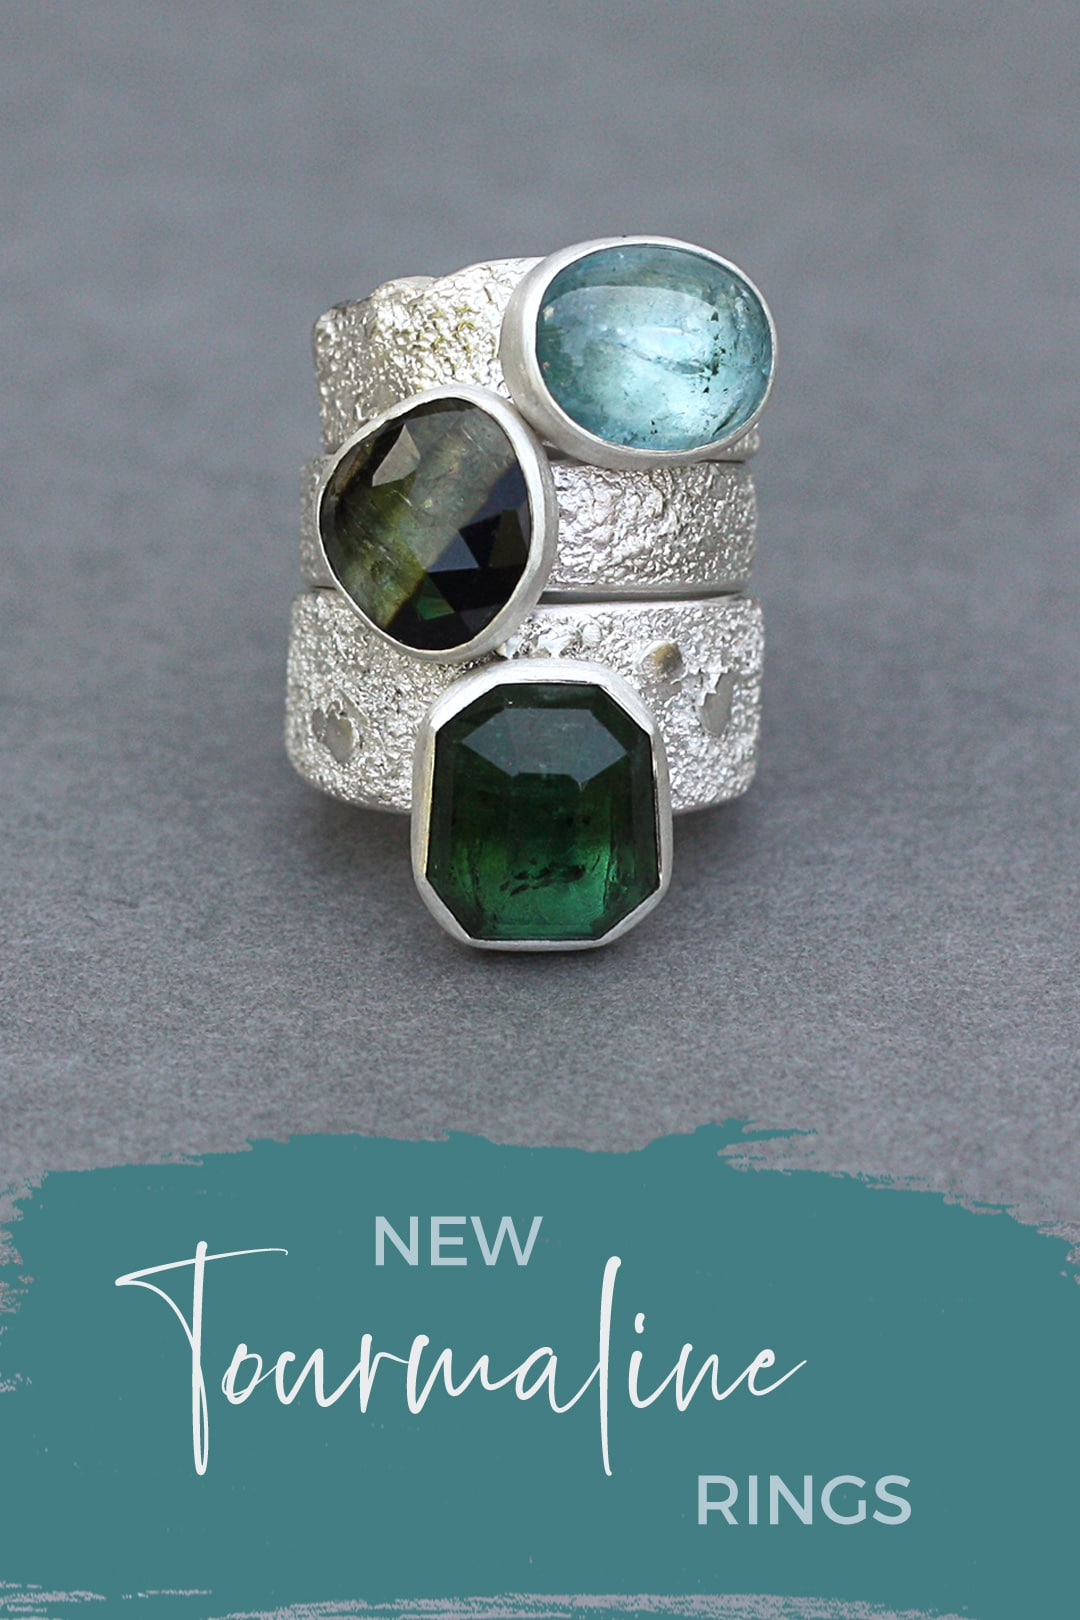 New blue and green tourmaline rings